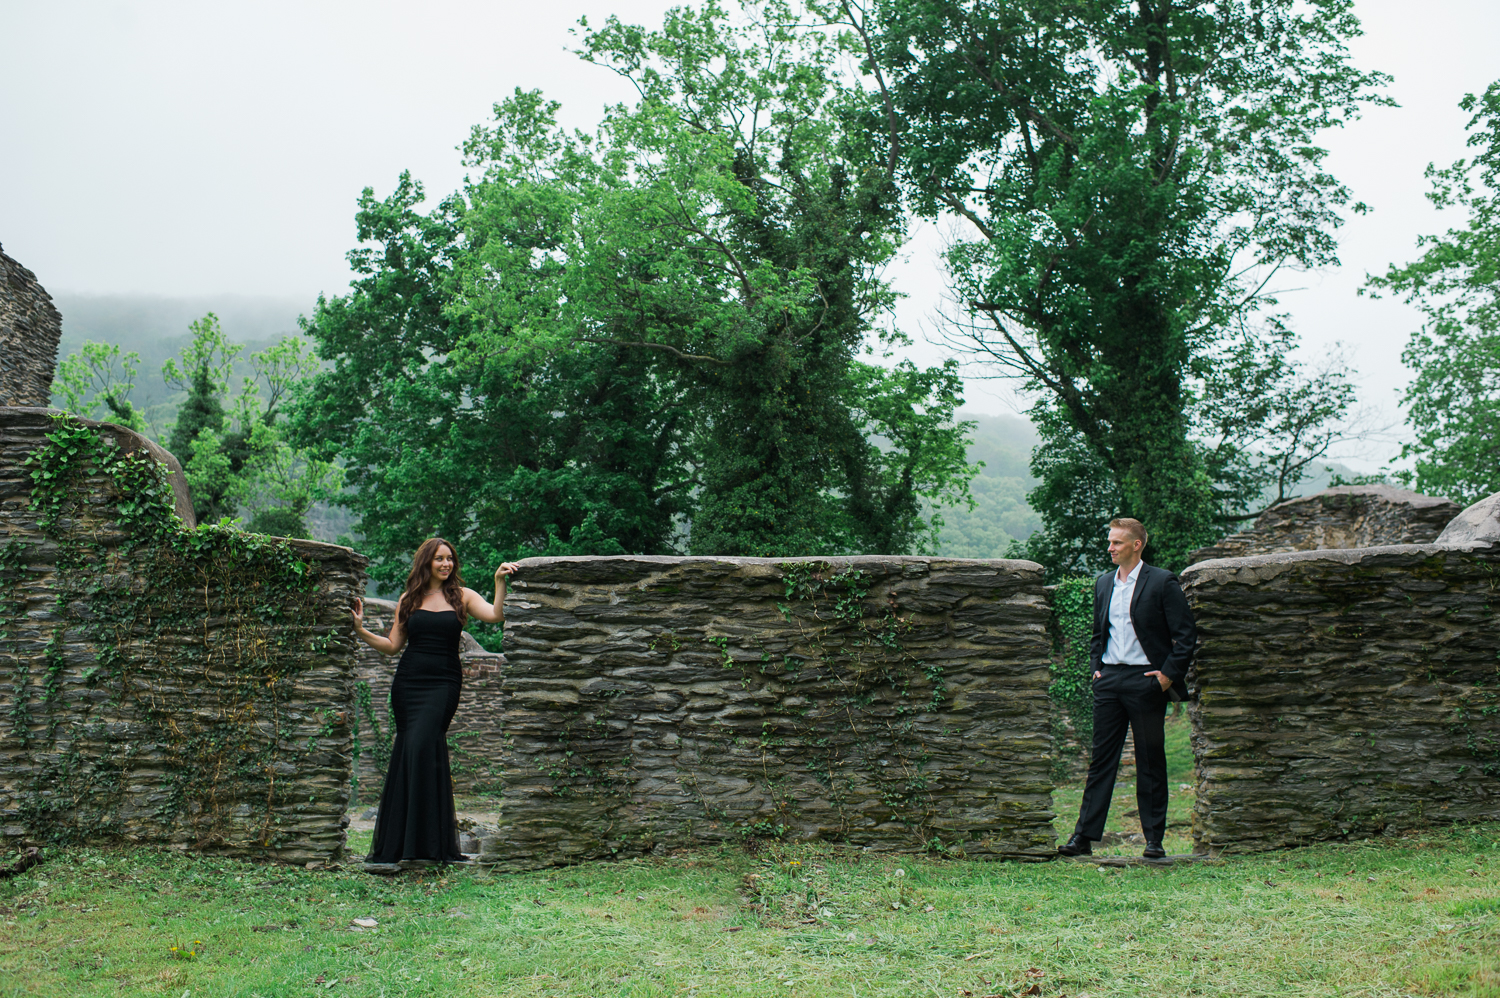 callie-and-chris-harpers-ferry-church-ruins-engagement-11.jpg